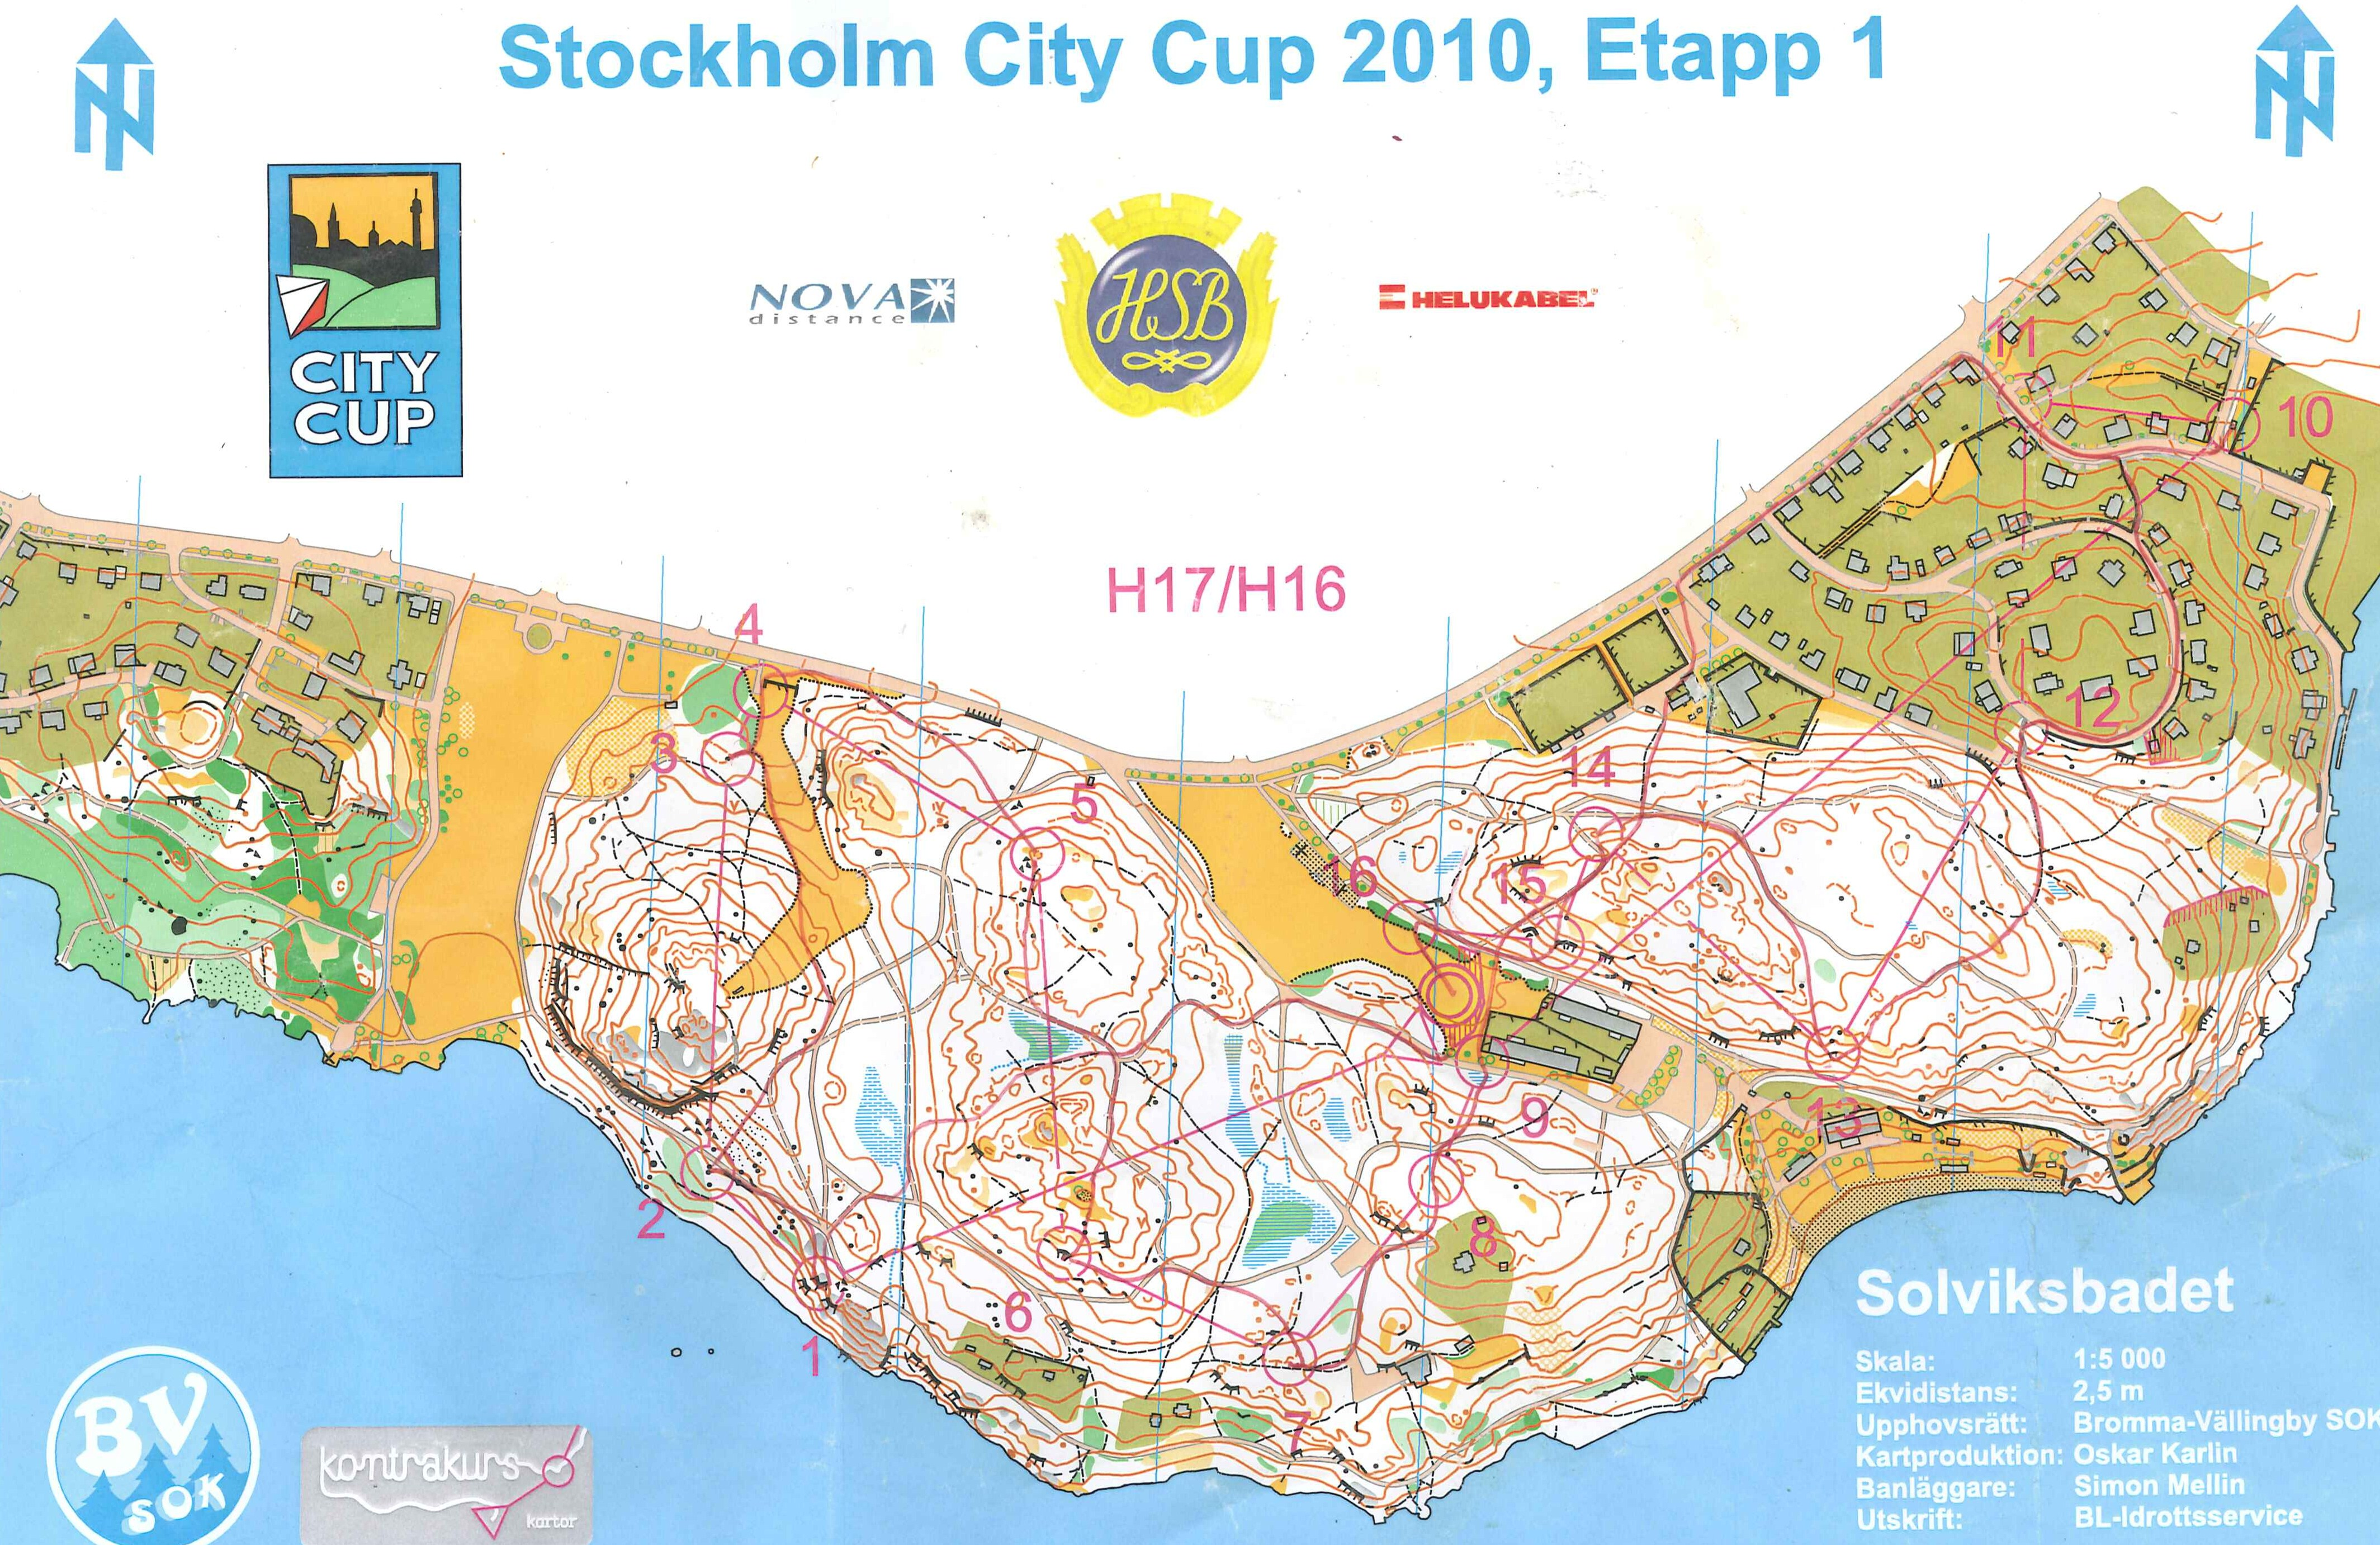 Stockholm City Cup (19/05/2010)